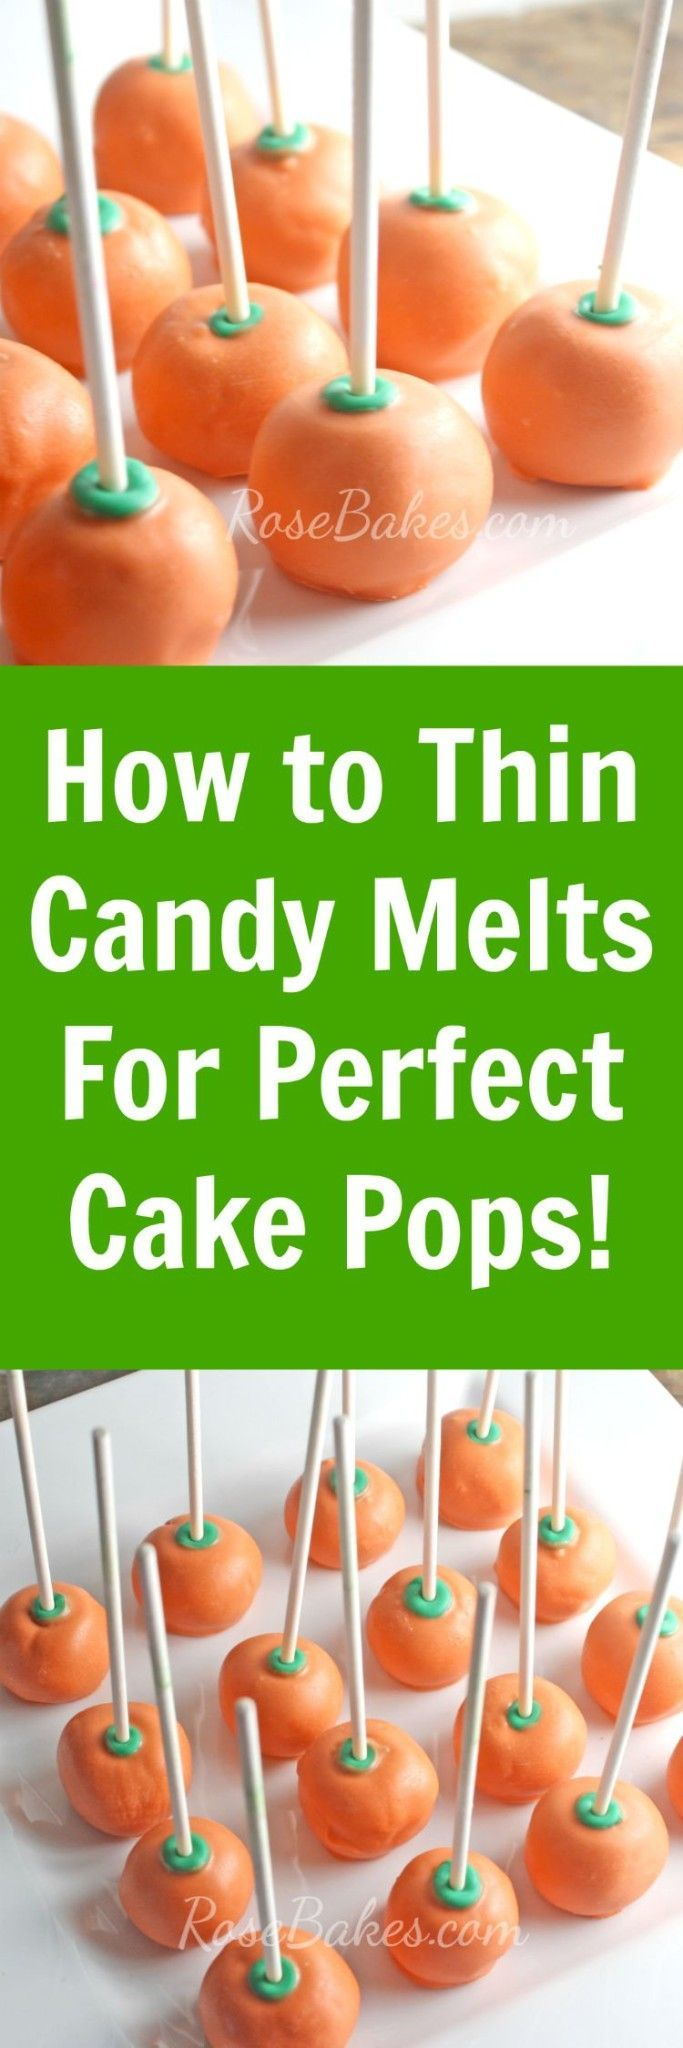 how to thin candy melts